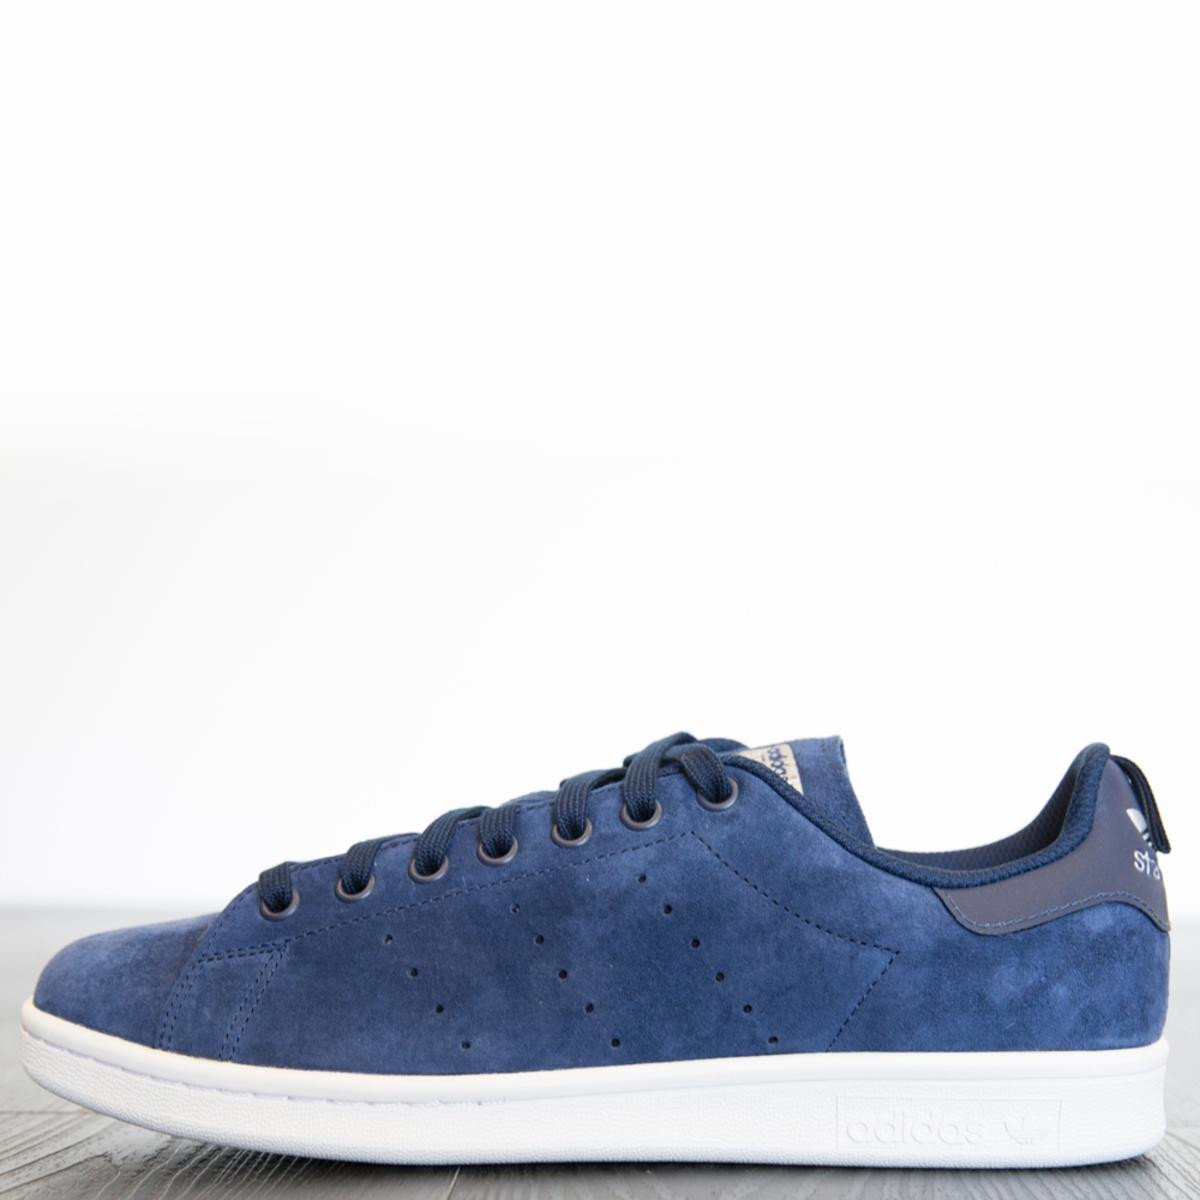 adidas Unisex: Stan Smith Collegiate Navy/Collegiate Navy/Running White Sneakers